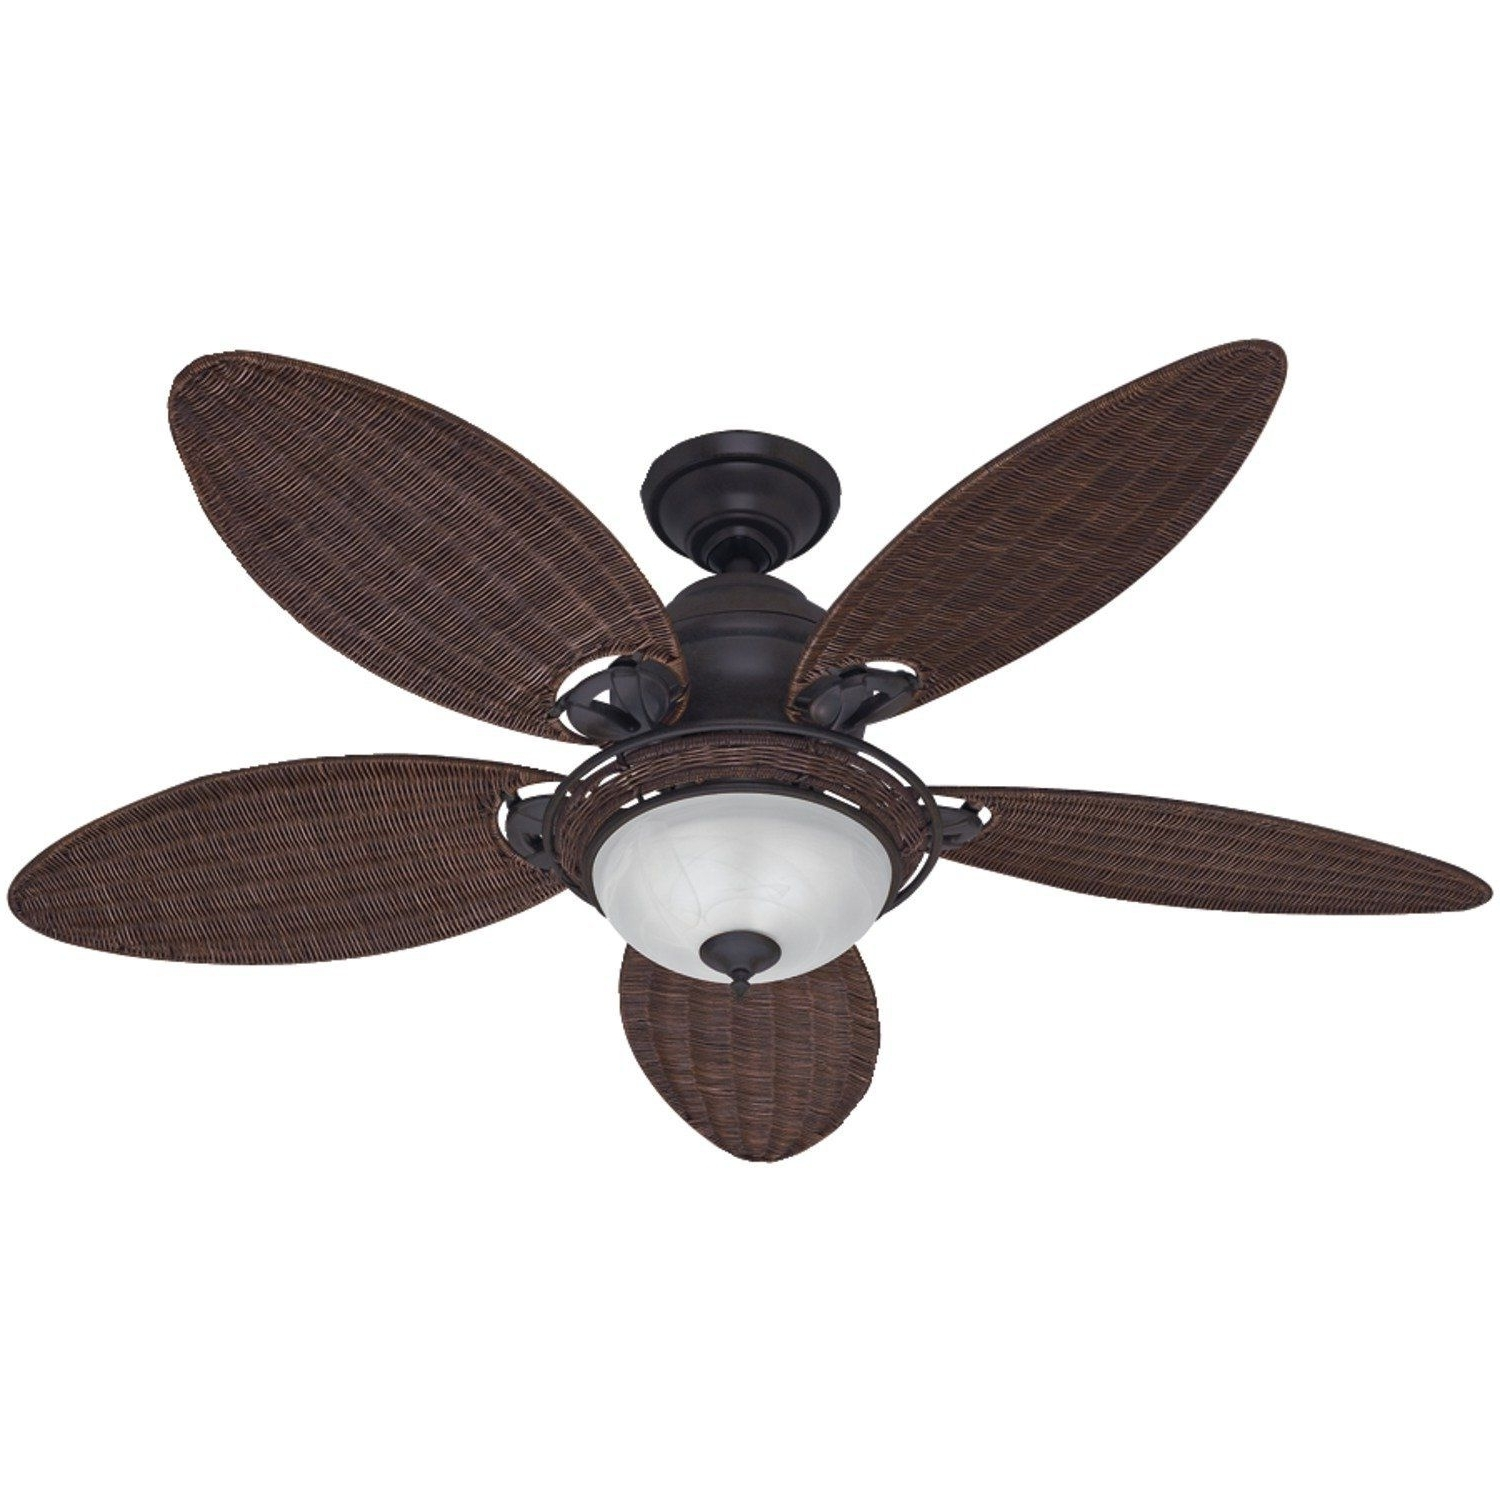 Most Recently Released Amazon: Hunter Fan Company 54095 Caribbean Breeze 54 Inch Throughout Wicker Outdoor Ceiling Fans (Gallery 4 of 20)